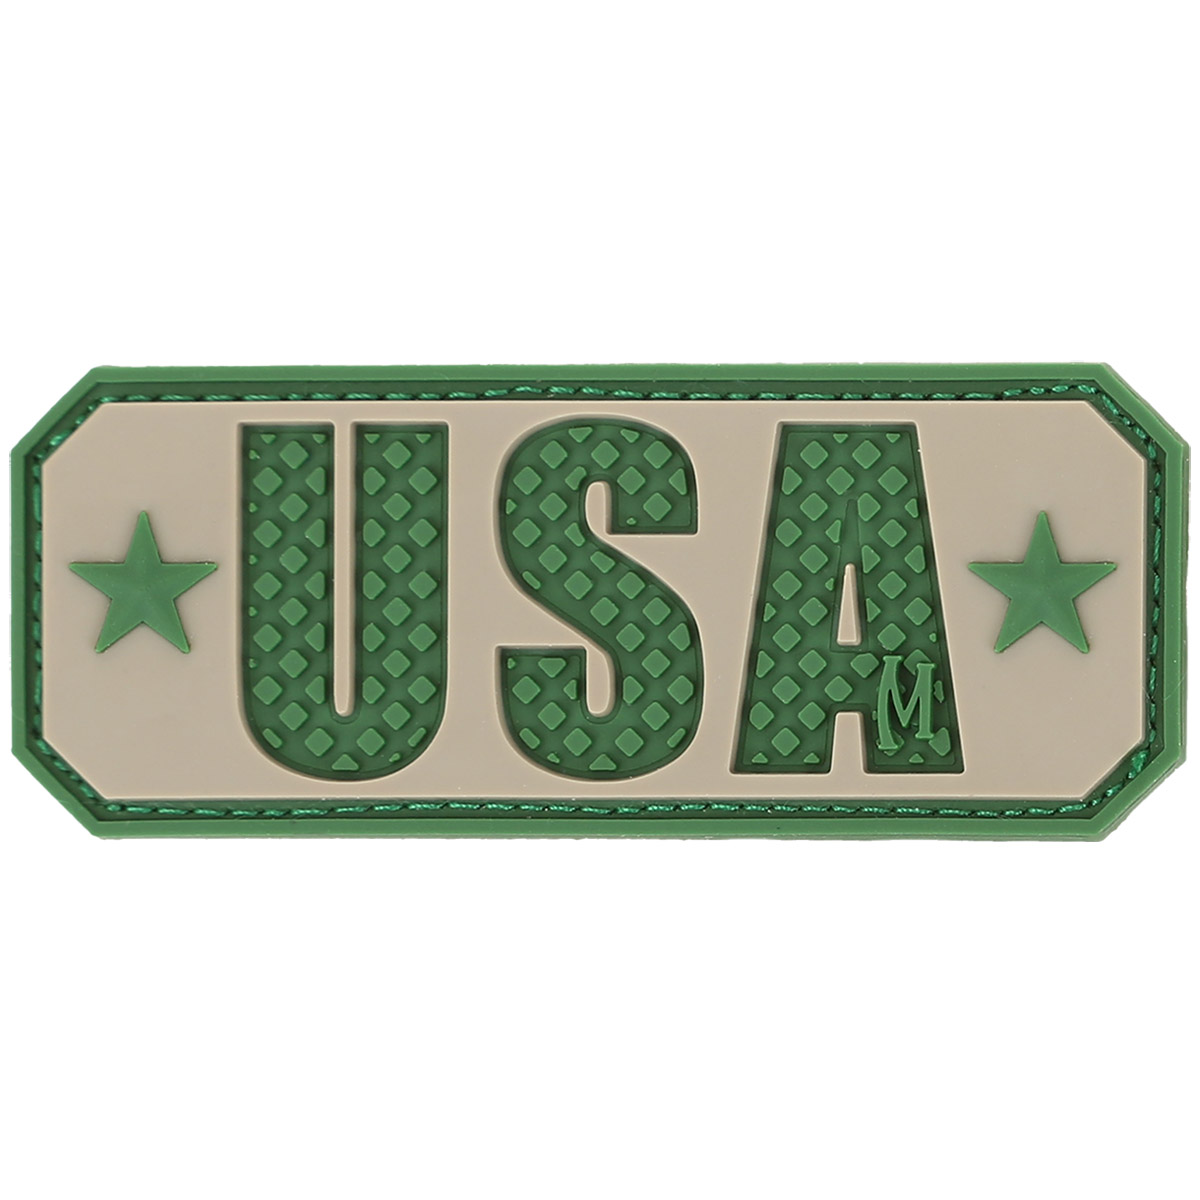 We here at Super Patch USA offer our customers high-quality stock and custom embroidered patches backed by over 30 years of experience. With over 3, stock designs and a staff that can create almost any custom embroidered patch, Super Patch USA is the leader in retail patches.